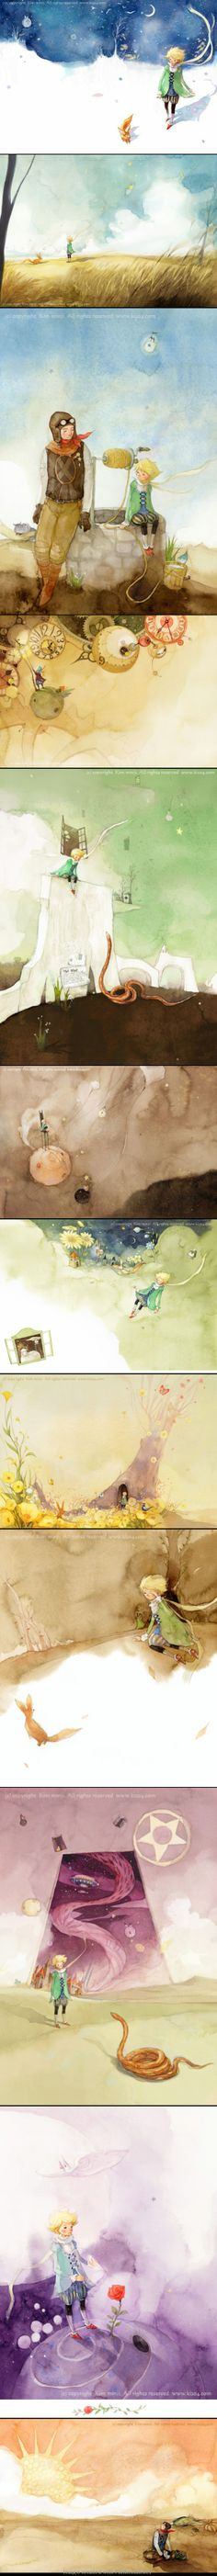 The Little Prince by Antoine de St. Exupery  free books you can read online